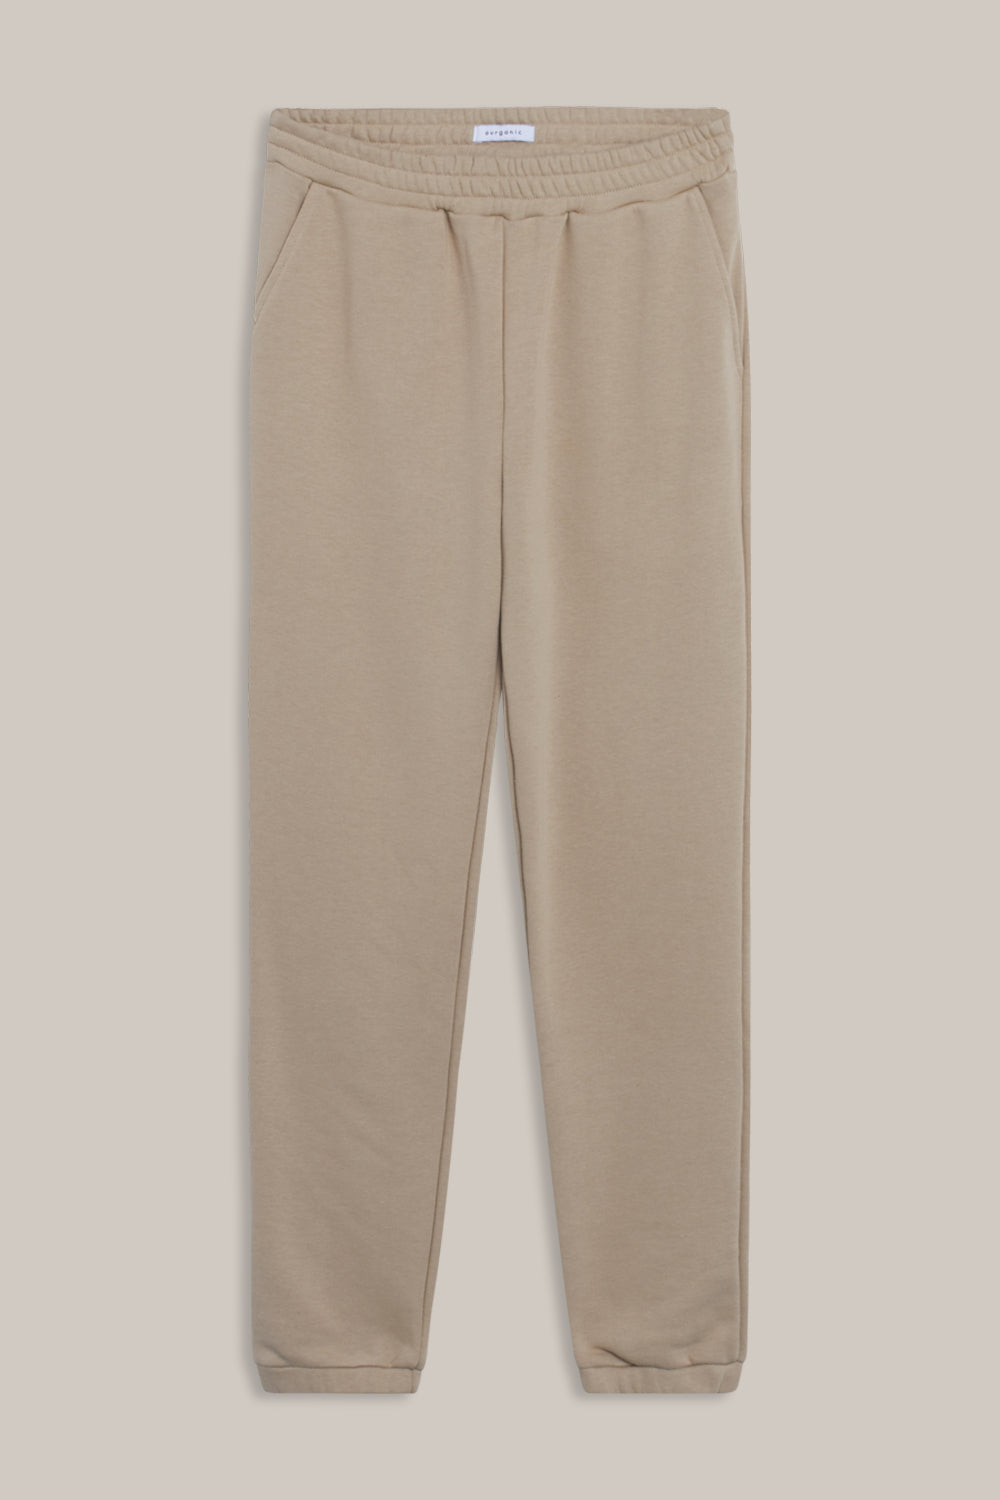 GRUNT OUR Lilian Jog Pant Pants Coffee Brown